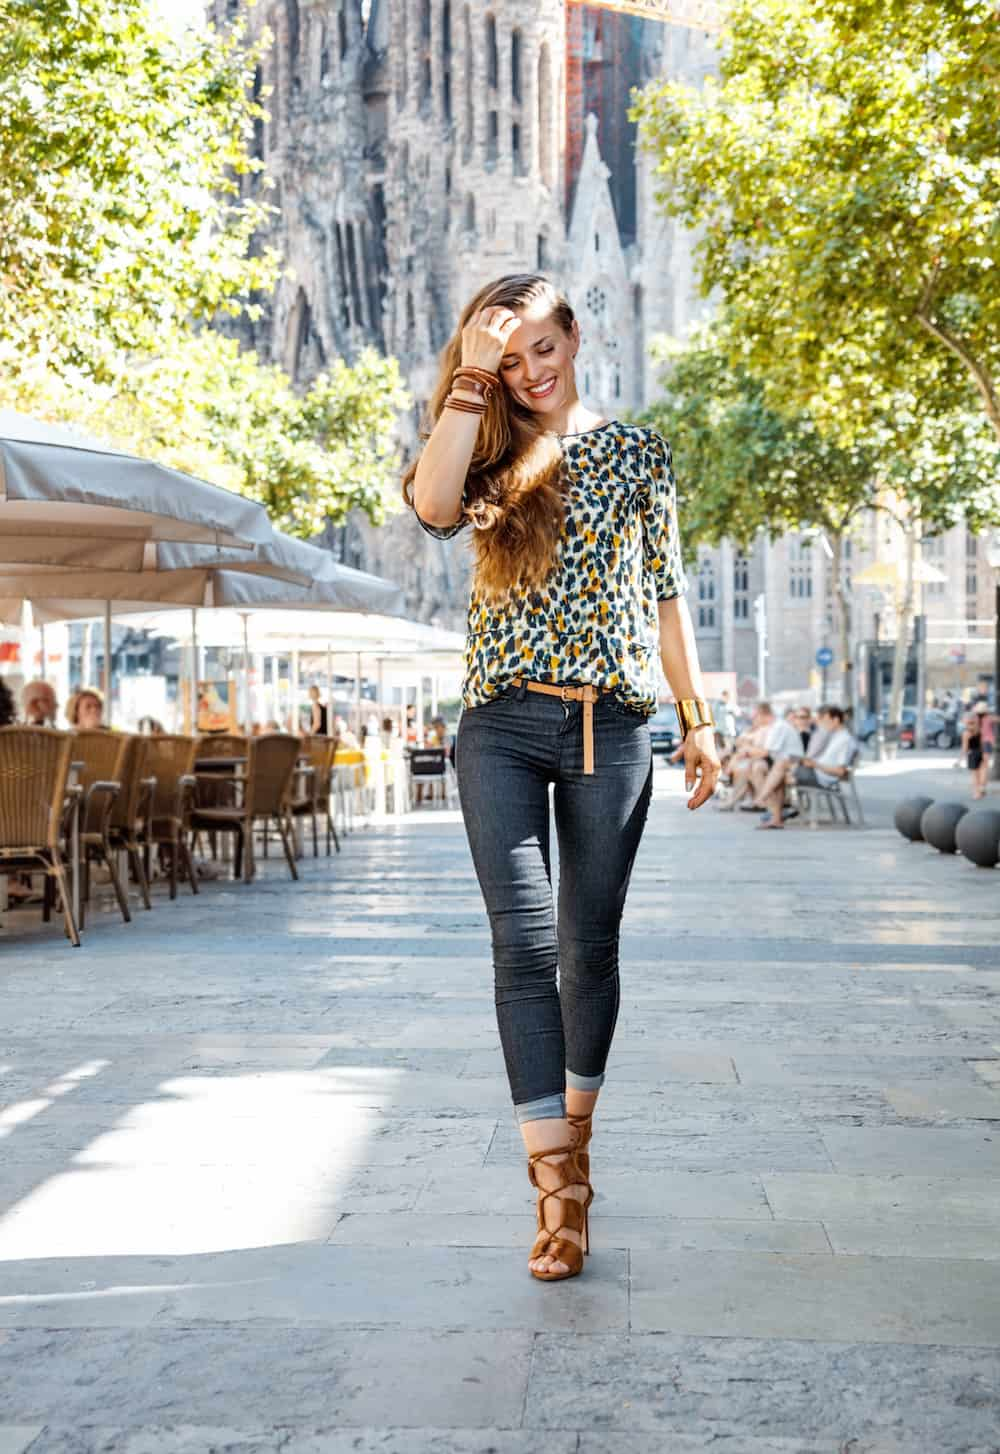 29af651816a How to Dress in Barcelona According to Season - Latitude 41